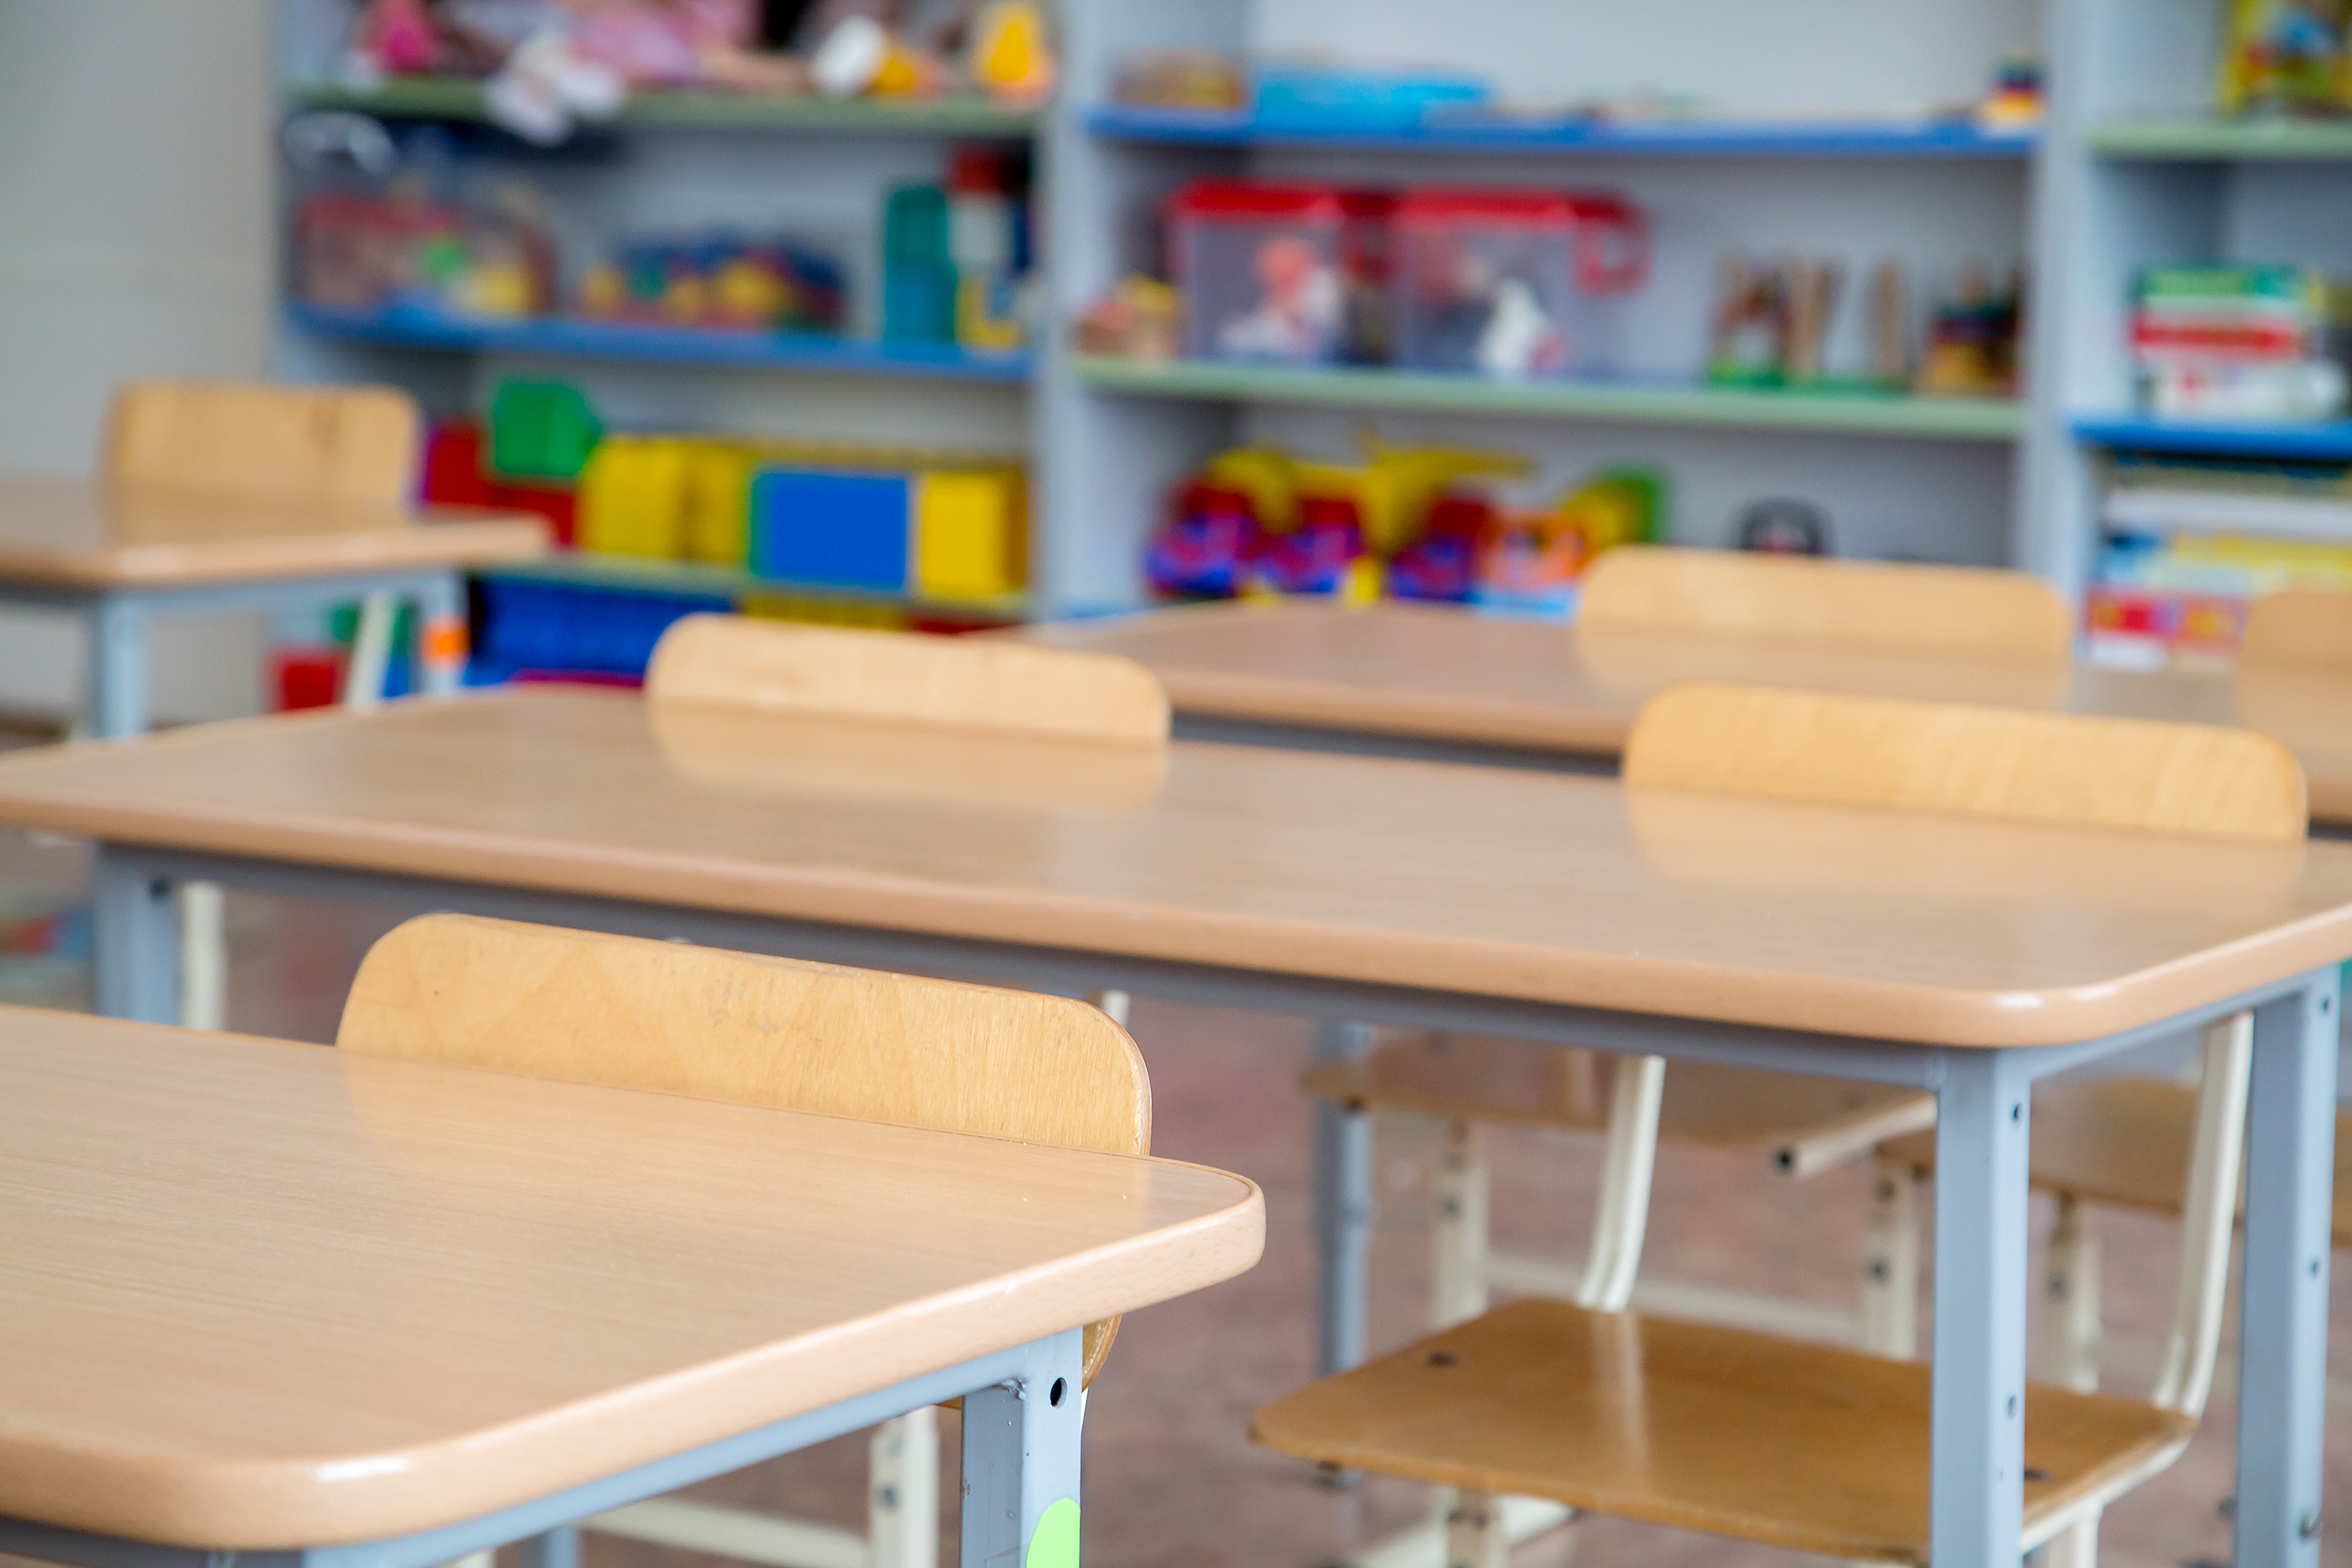 The Best Places To Get High Quality And Low Price Daycare Center Supplies  And